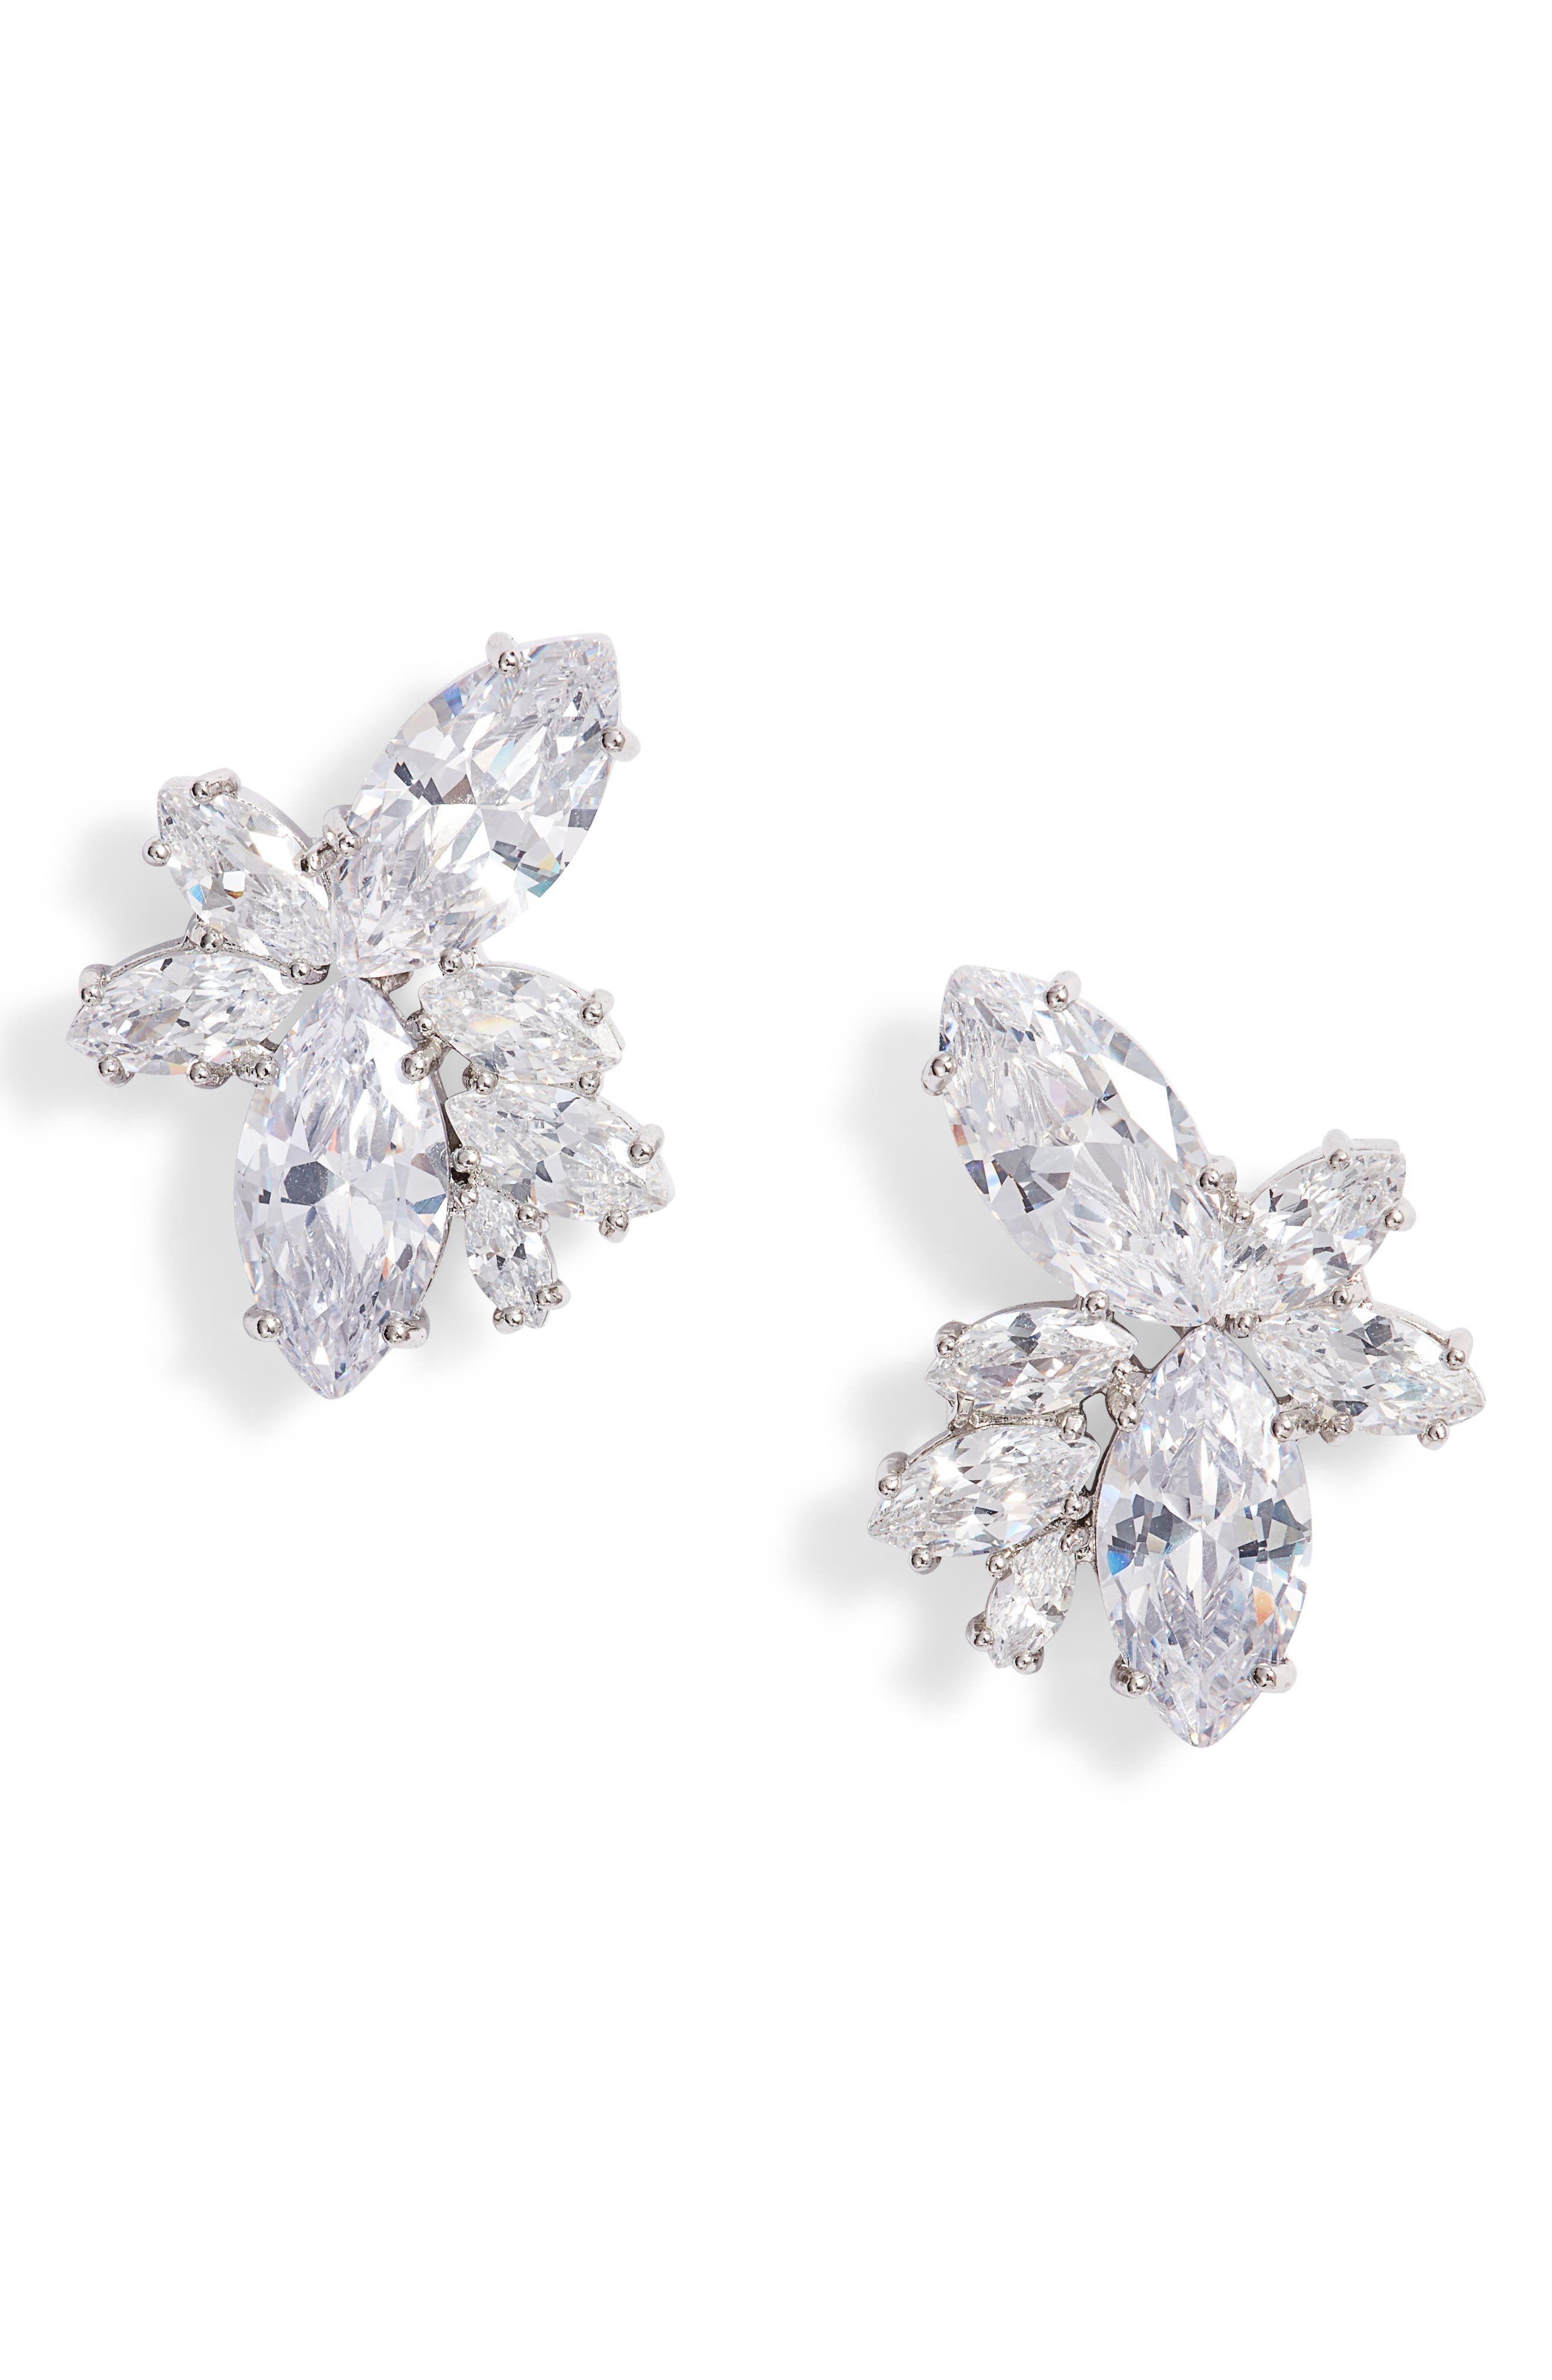 Floral Stone Cluster Stud Earrings,                         Main,                         color, Silver/ White Cz